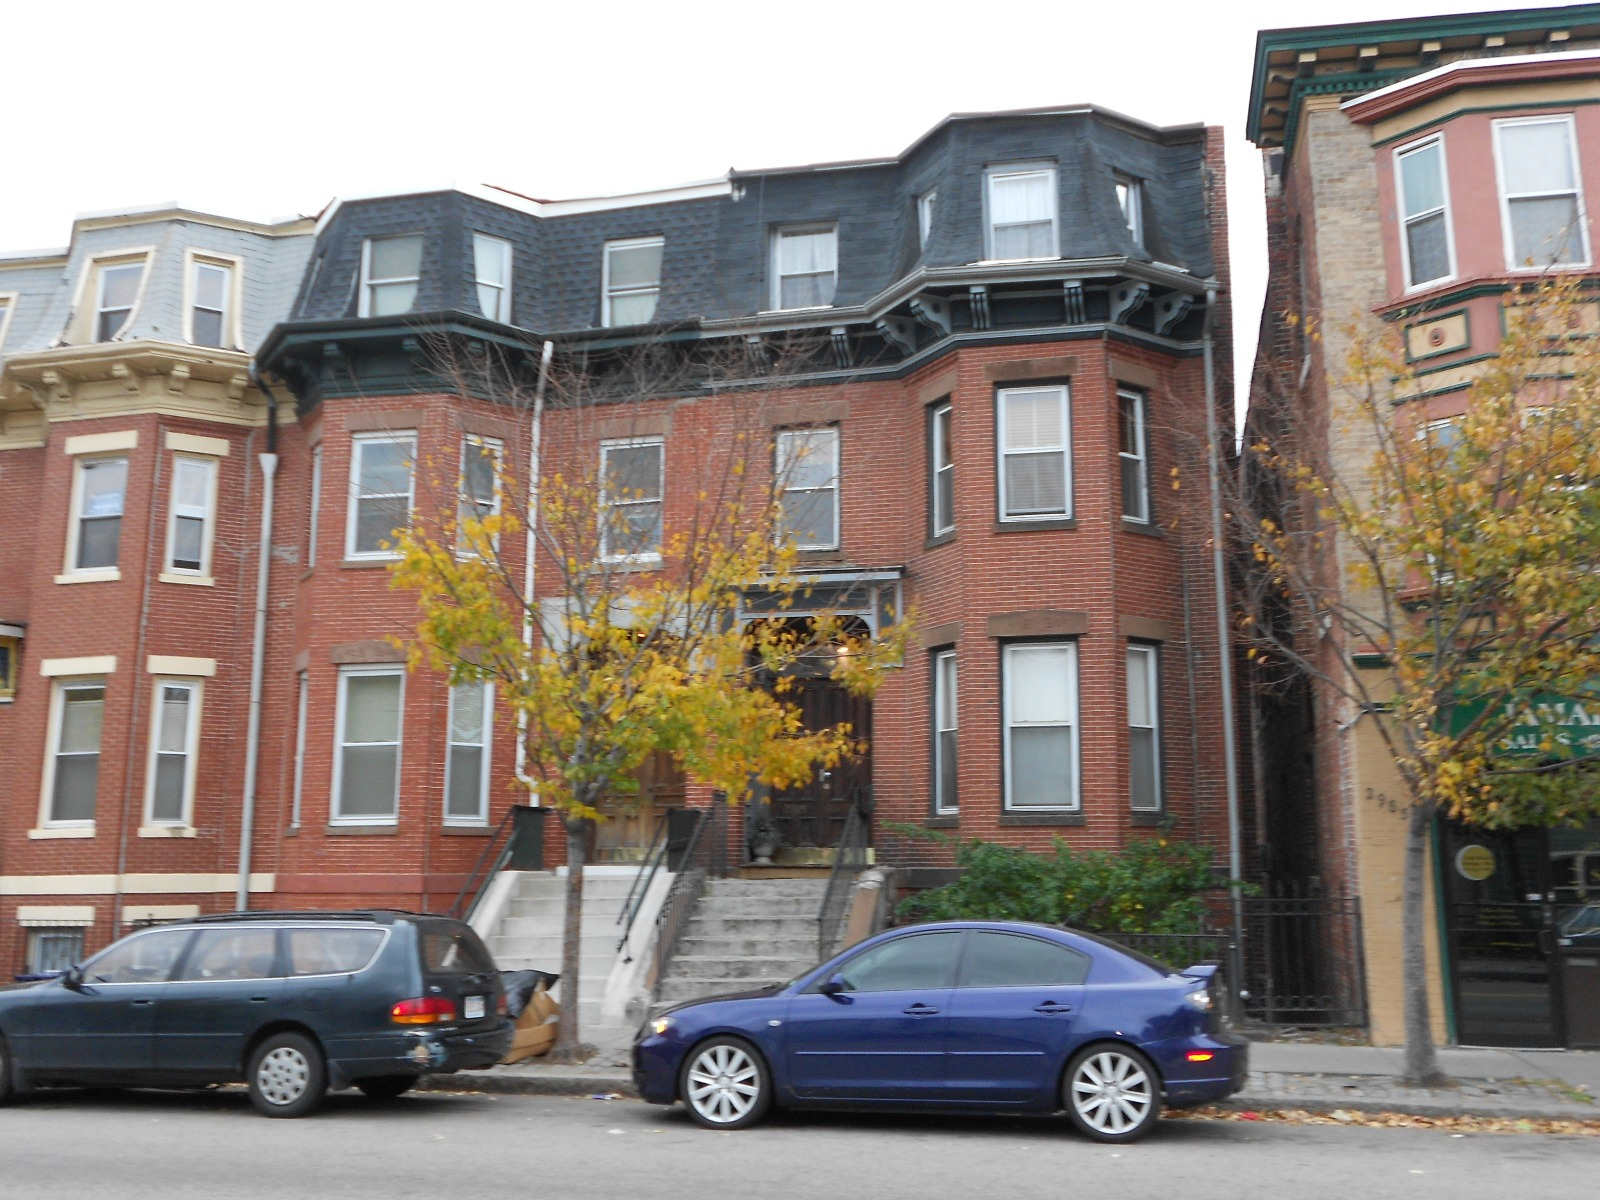 For you, a Cozy 2bd apartment avail now, near Egleston Sq.